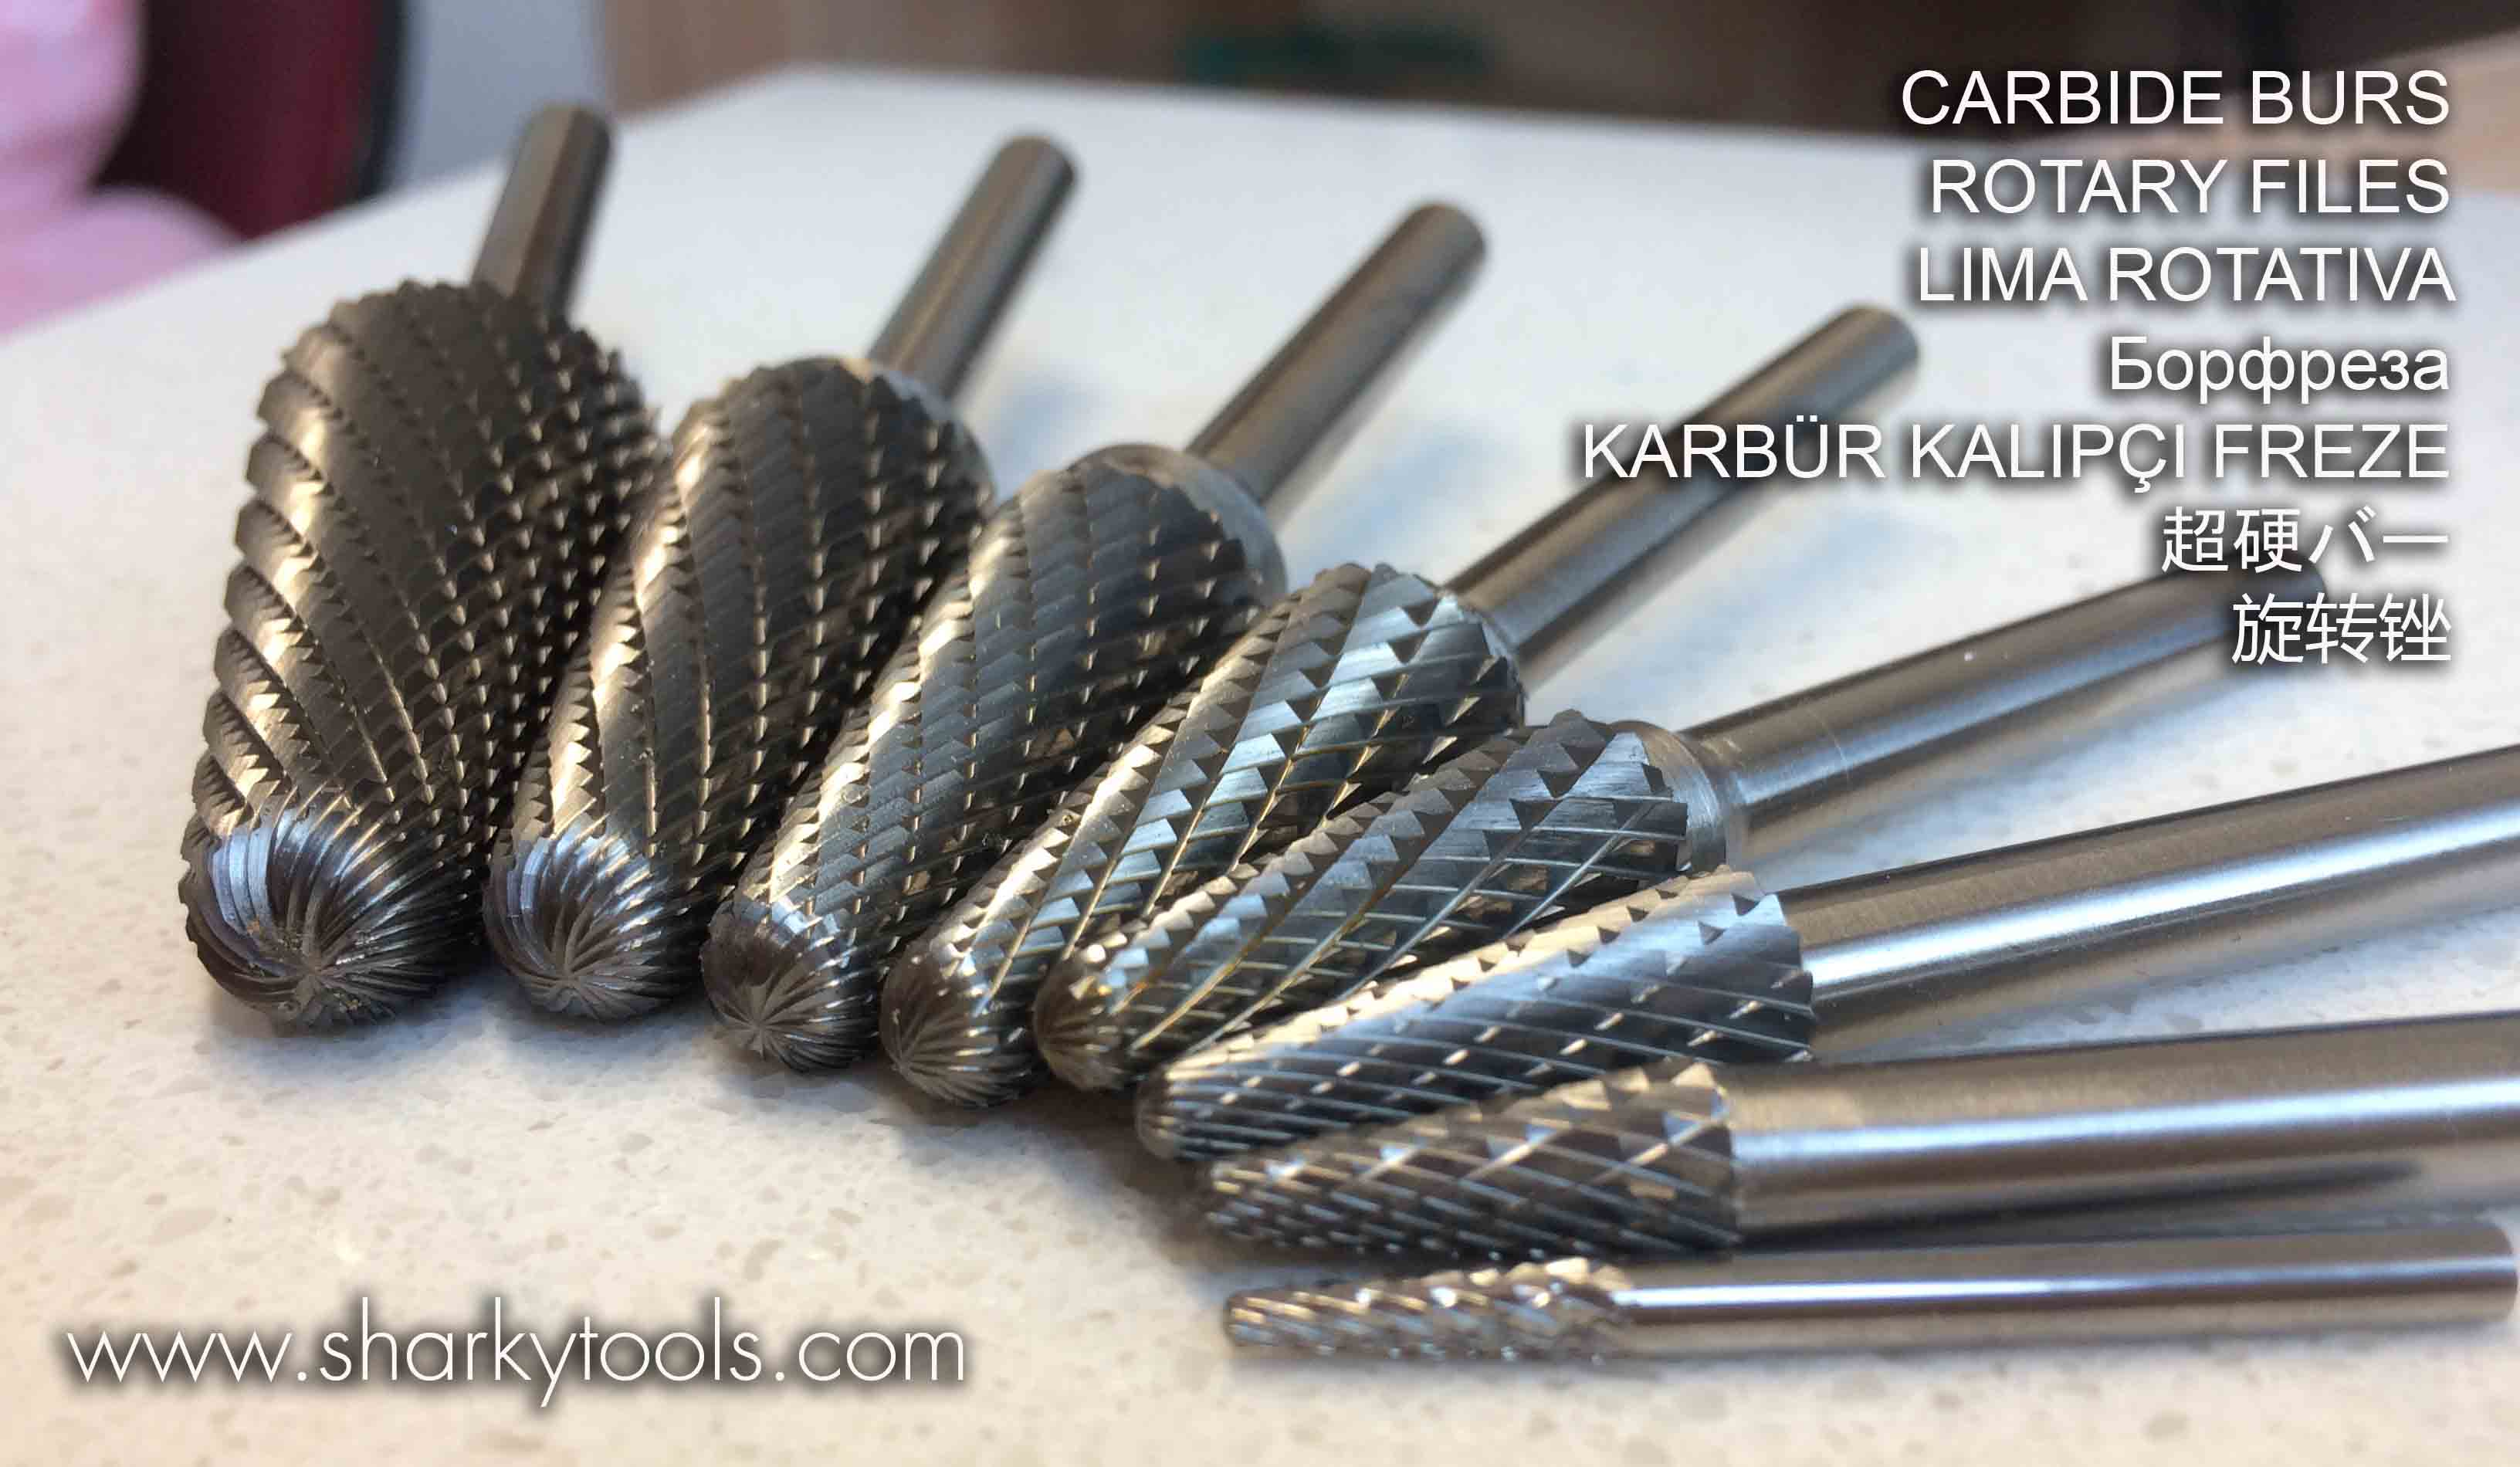 Carbide burrs